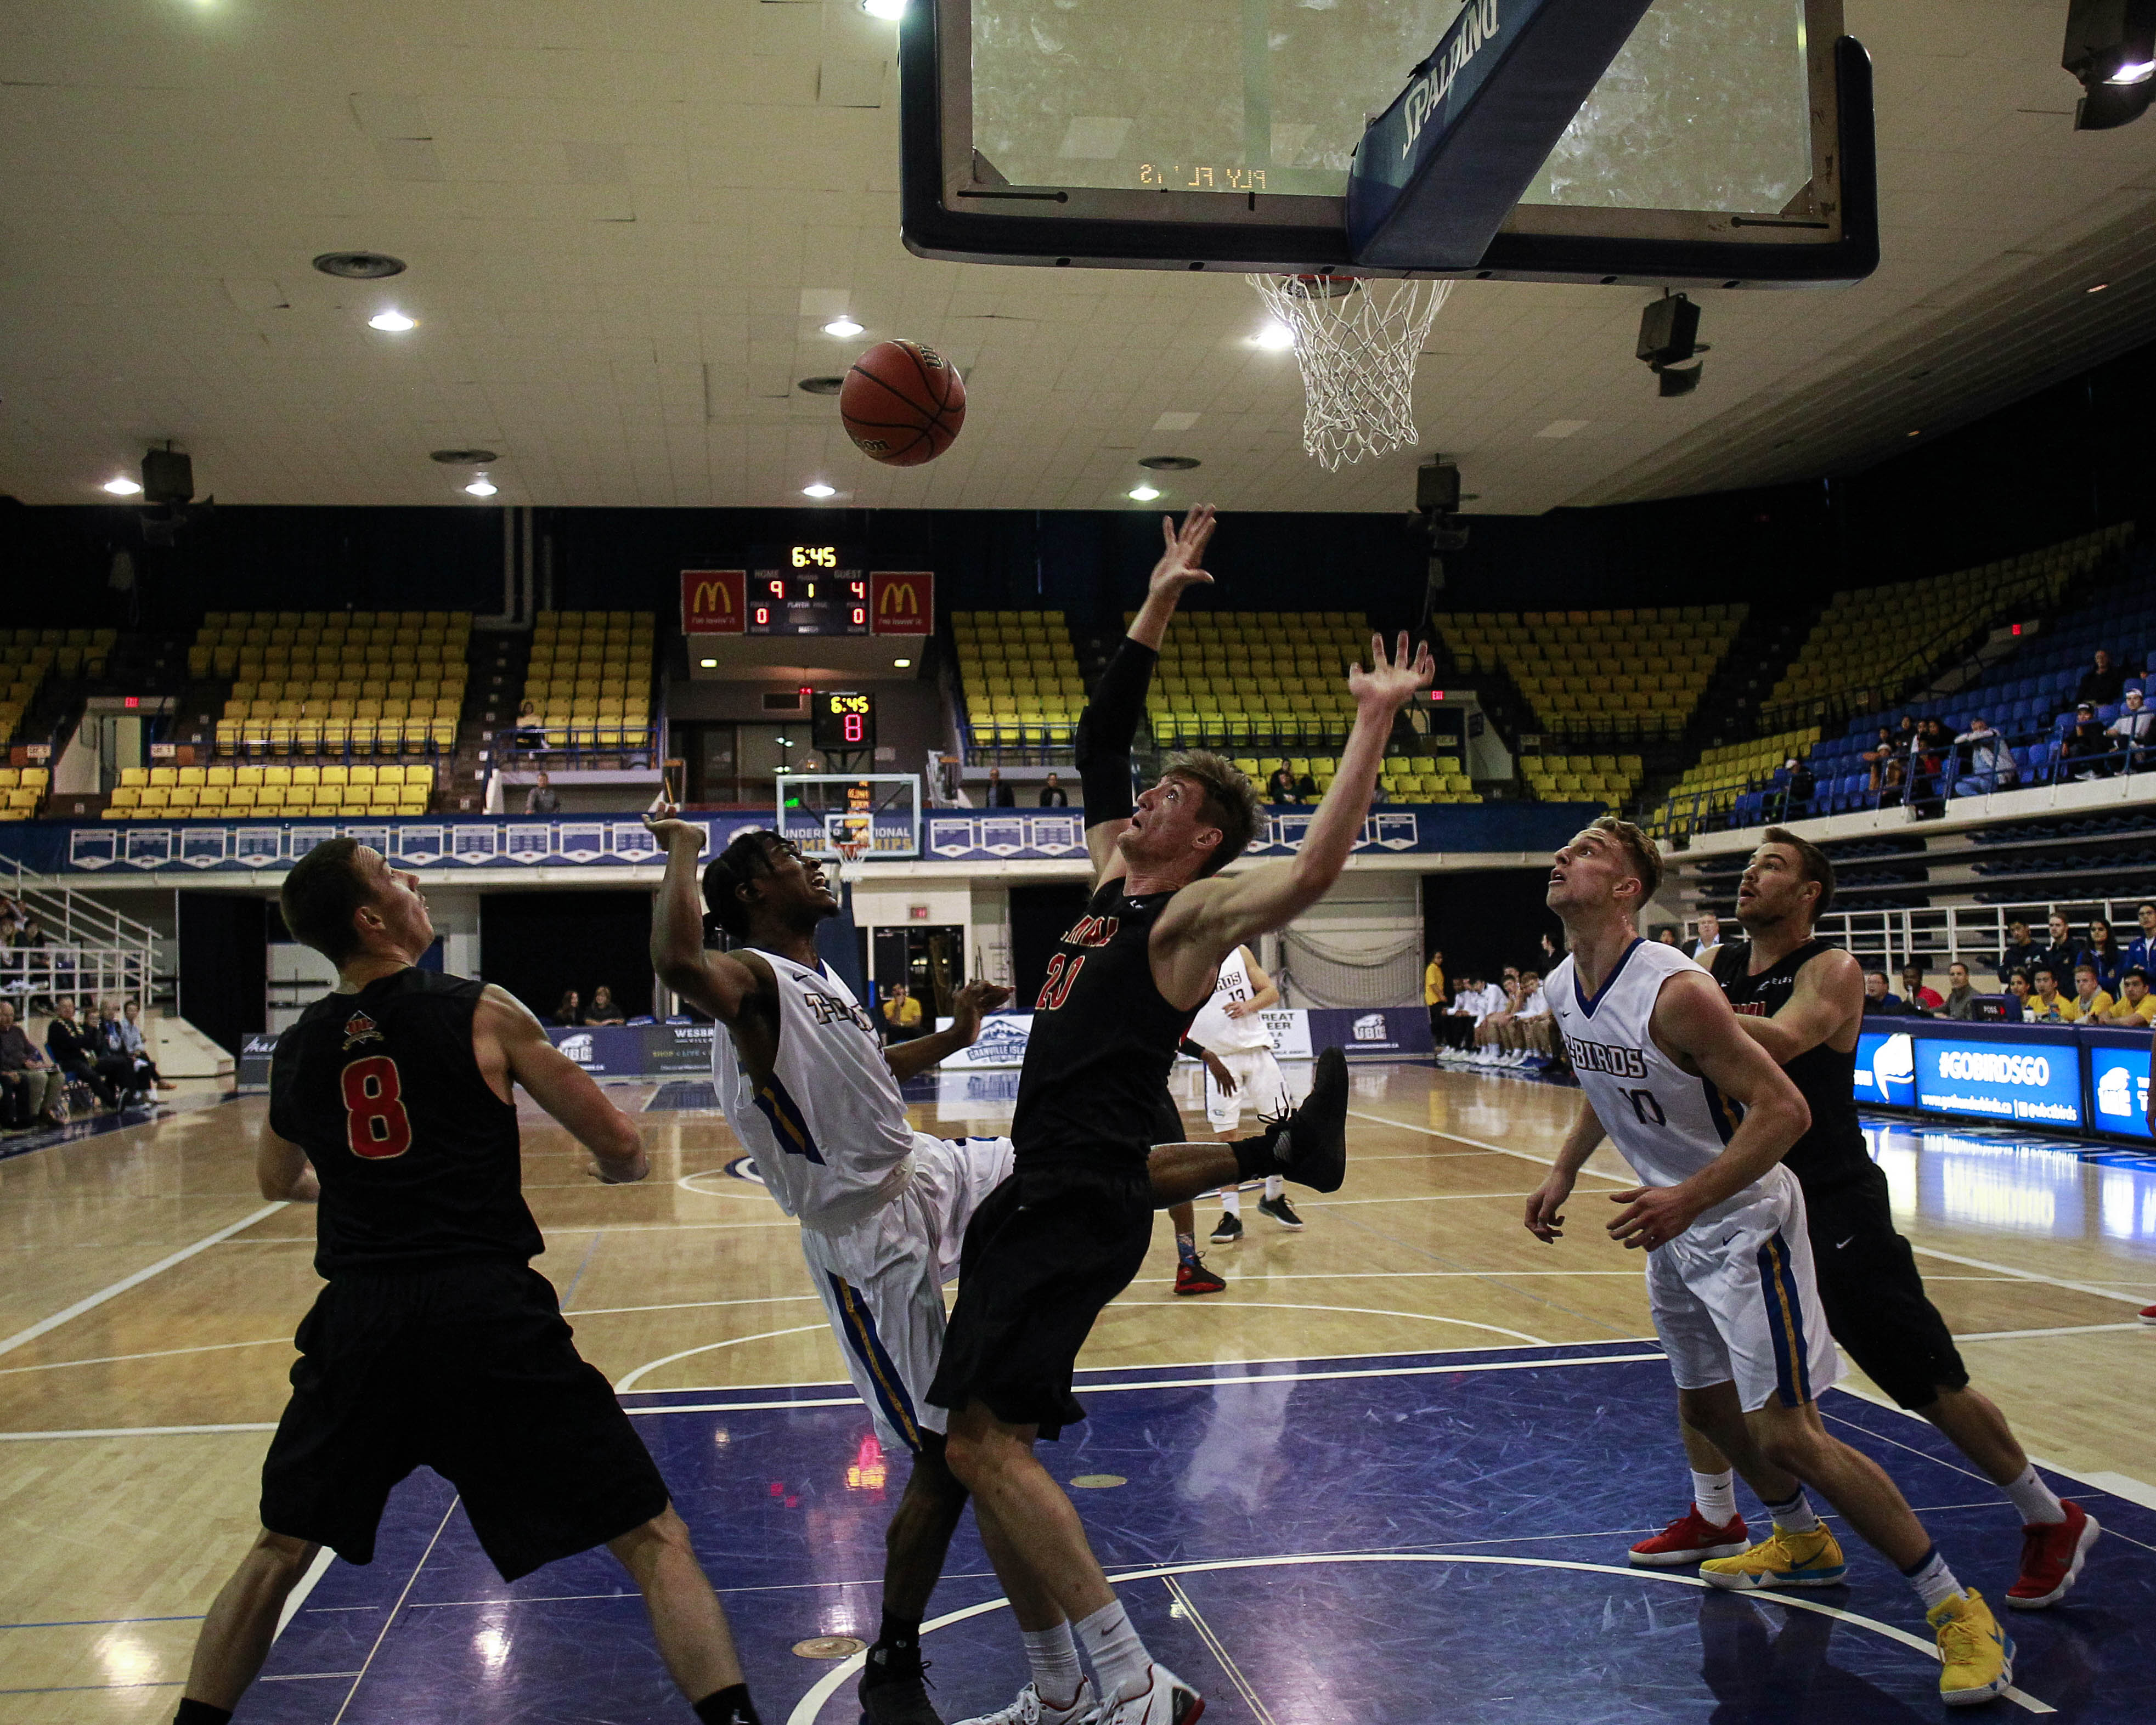 UBC scrambles for the ball in the paint.